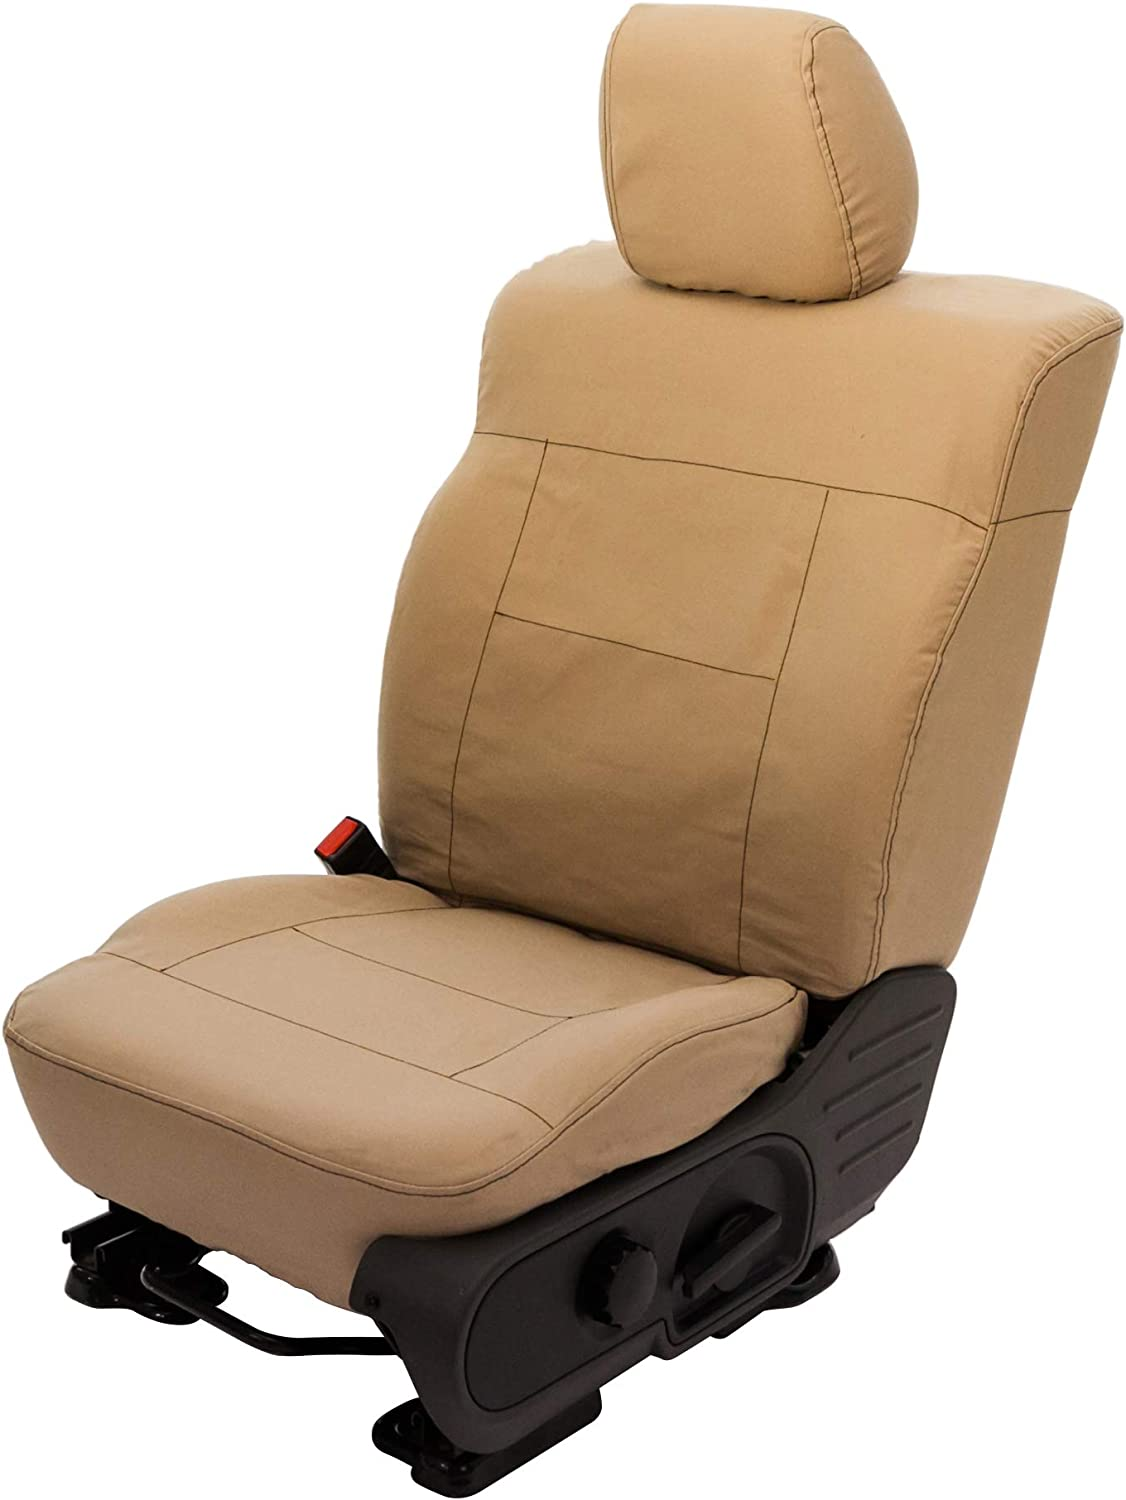 Saddleman S 049907-09 Tan Custom Made Front Low Back Bucket with Airbag Seat Covers